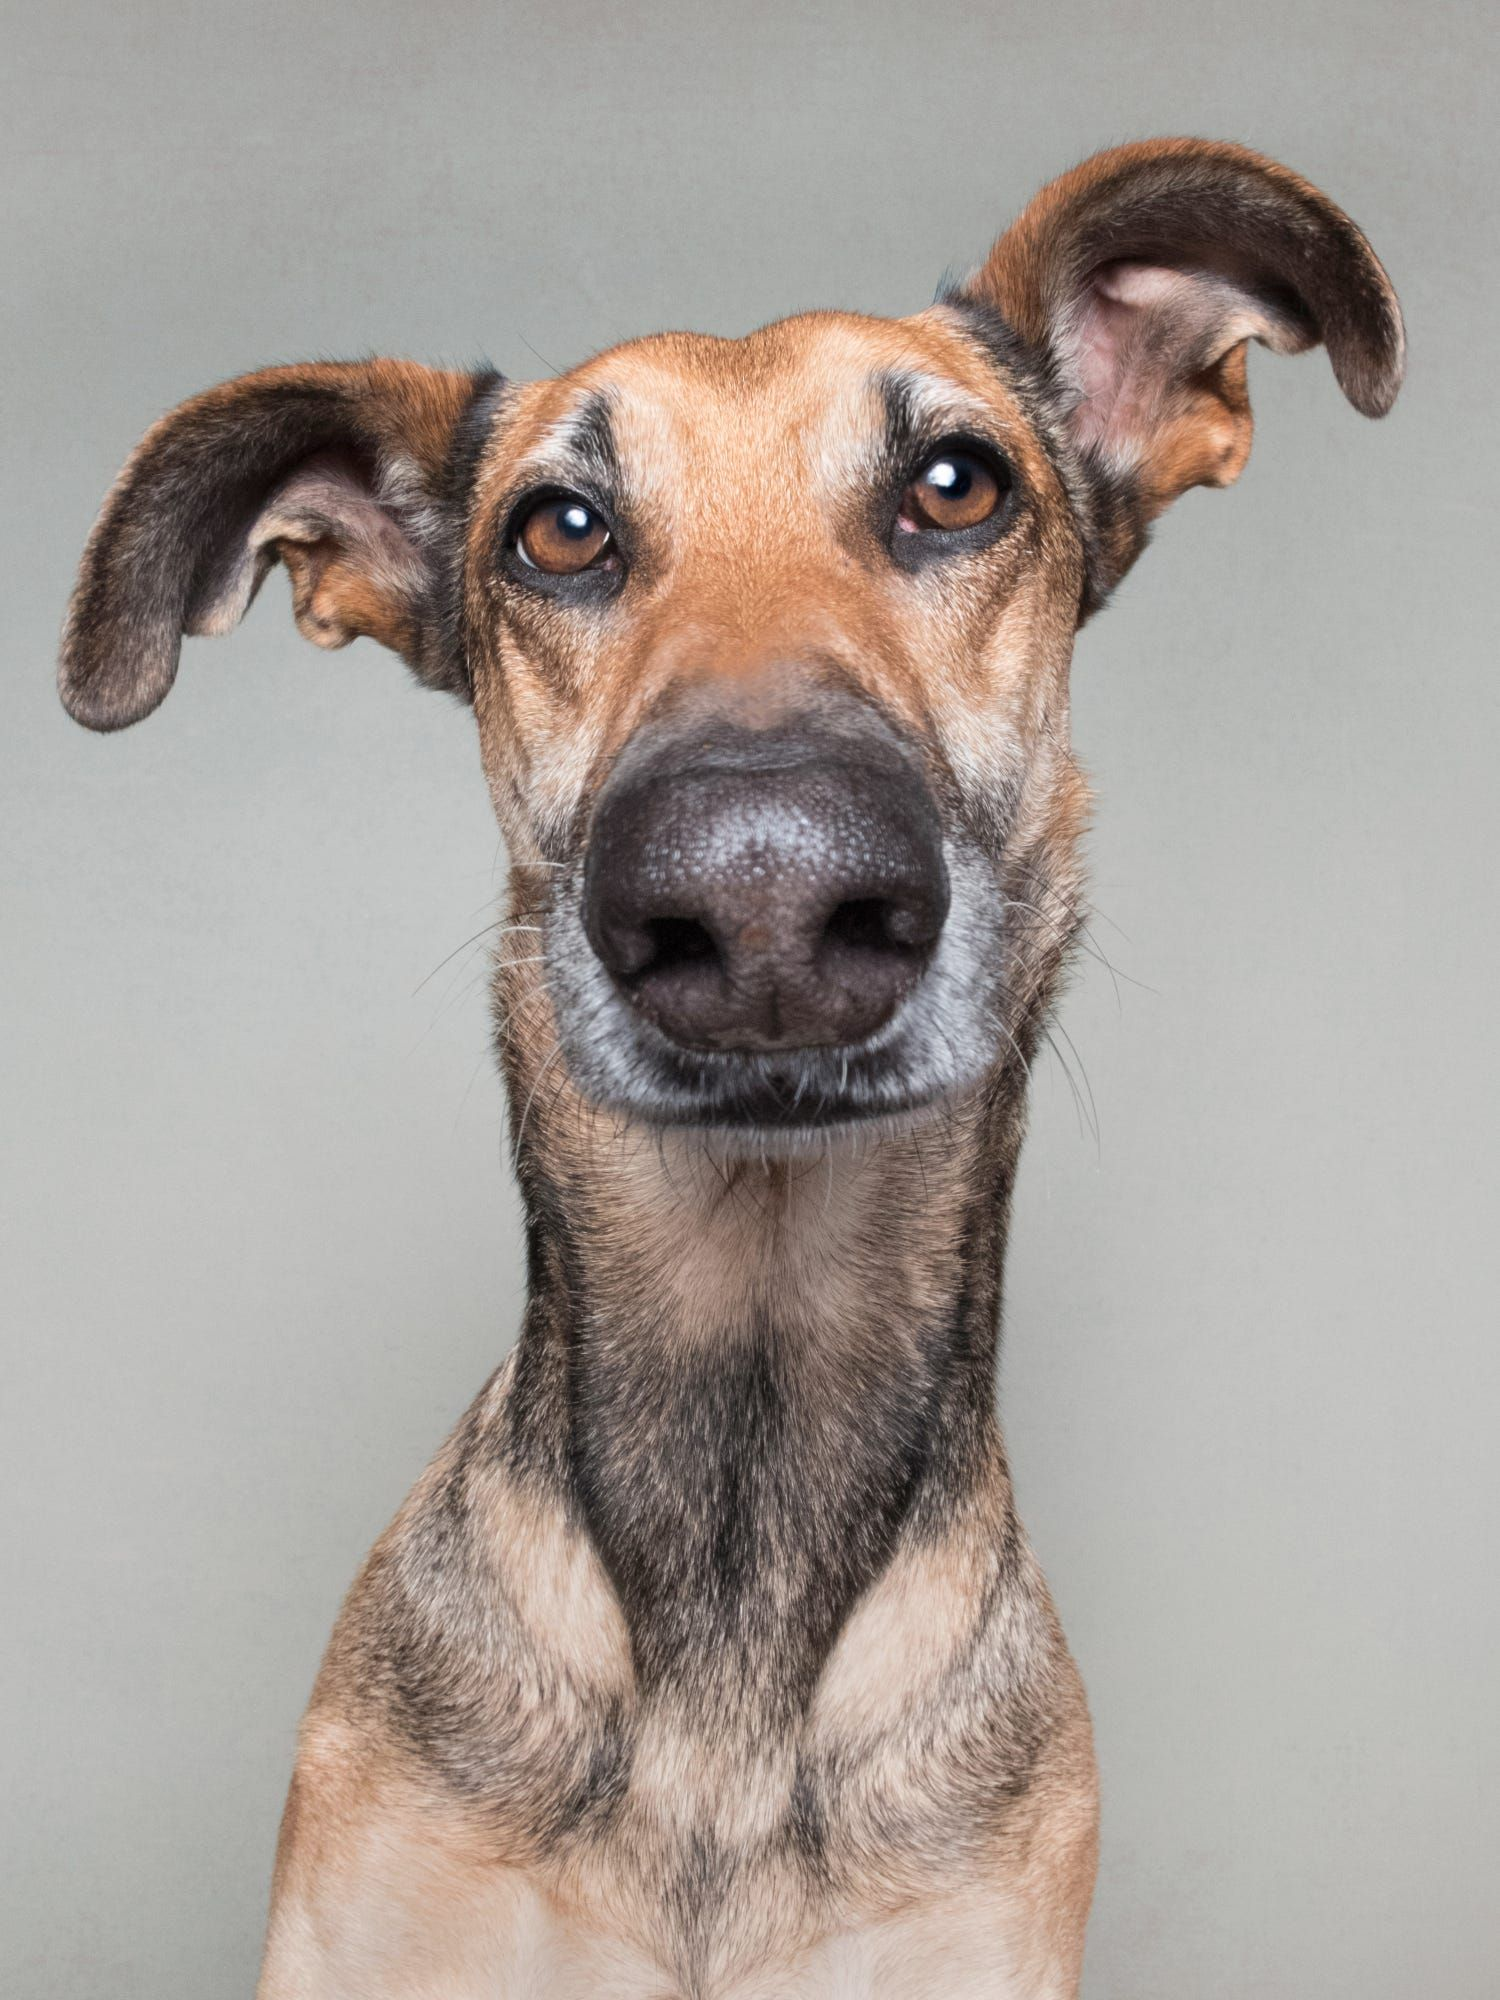 All my pictures here can be licensed. Message info@elkevogelsang.com